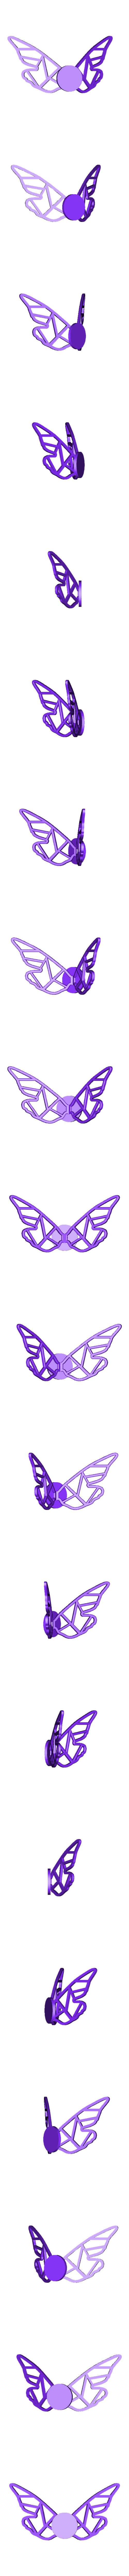 papillon.stl Download STL file Graphic Butterfly Wing • 3D printing template, 3DHAG